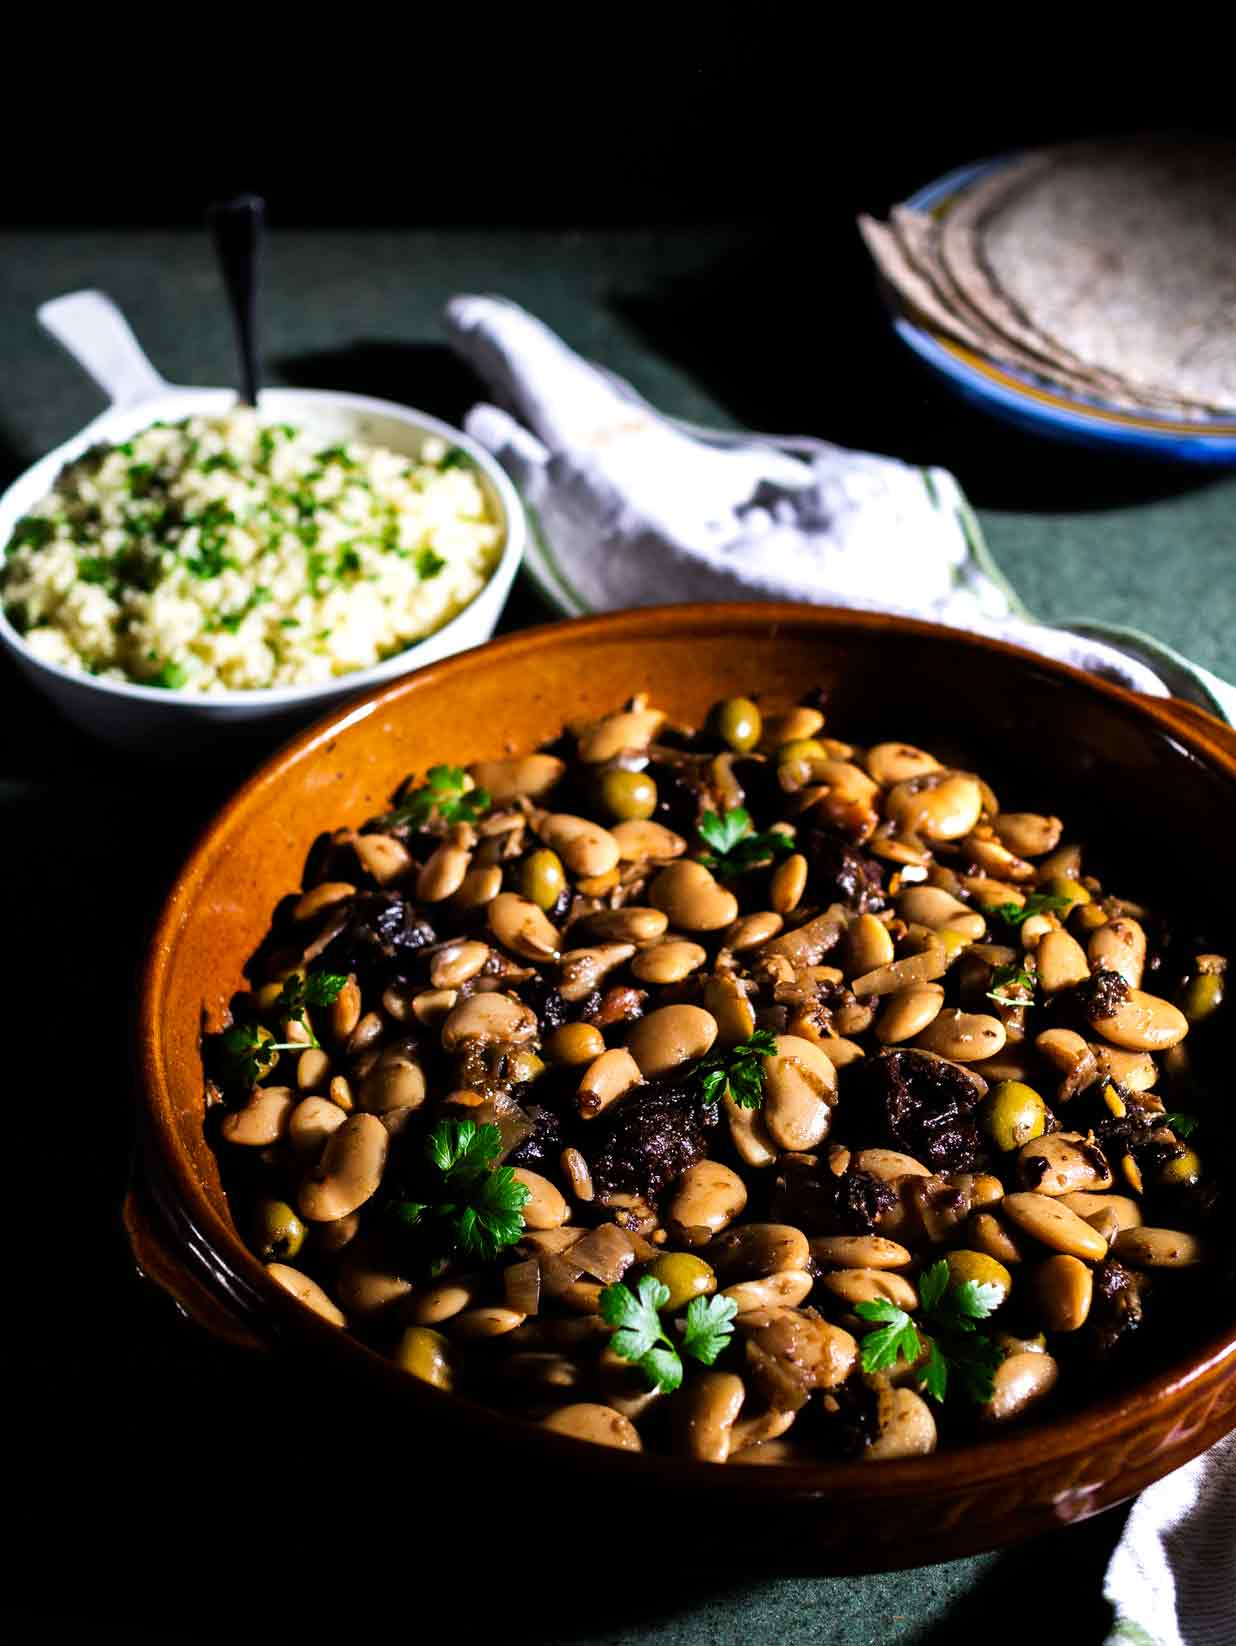 This Tagine of Butter Beans, Almonds and Prunes is so delicious - sweet and sour, filling, healthy and 100% vegan! #moroccan #couscous #gluten #free #recipe #recipes #middle #eastern #vegetarian